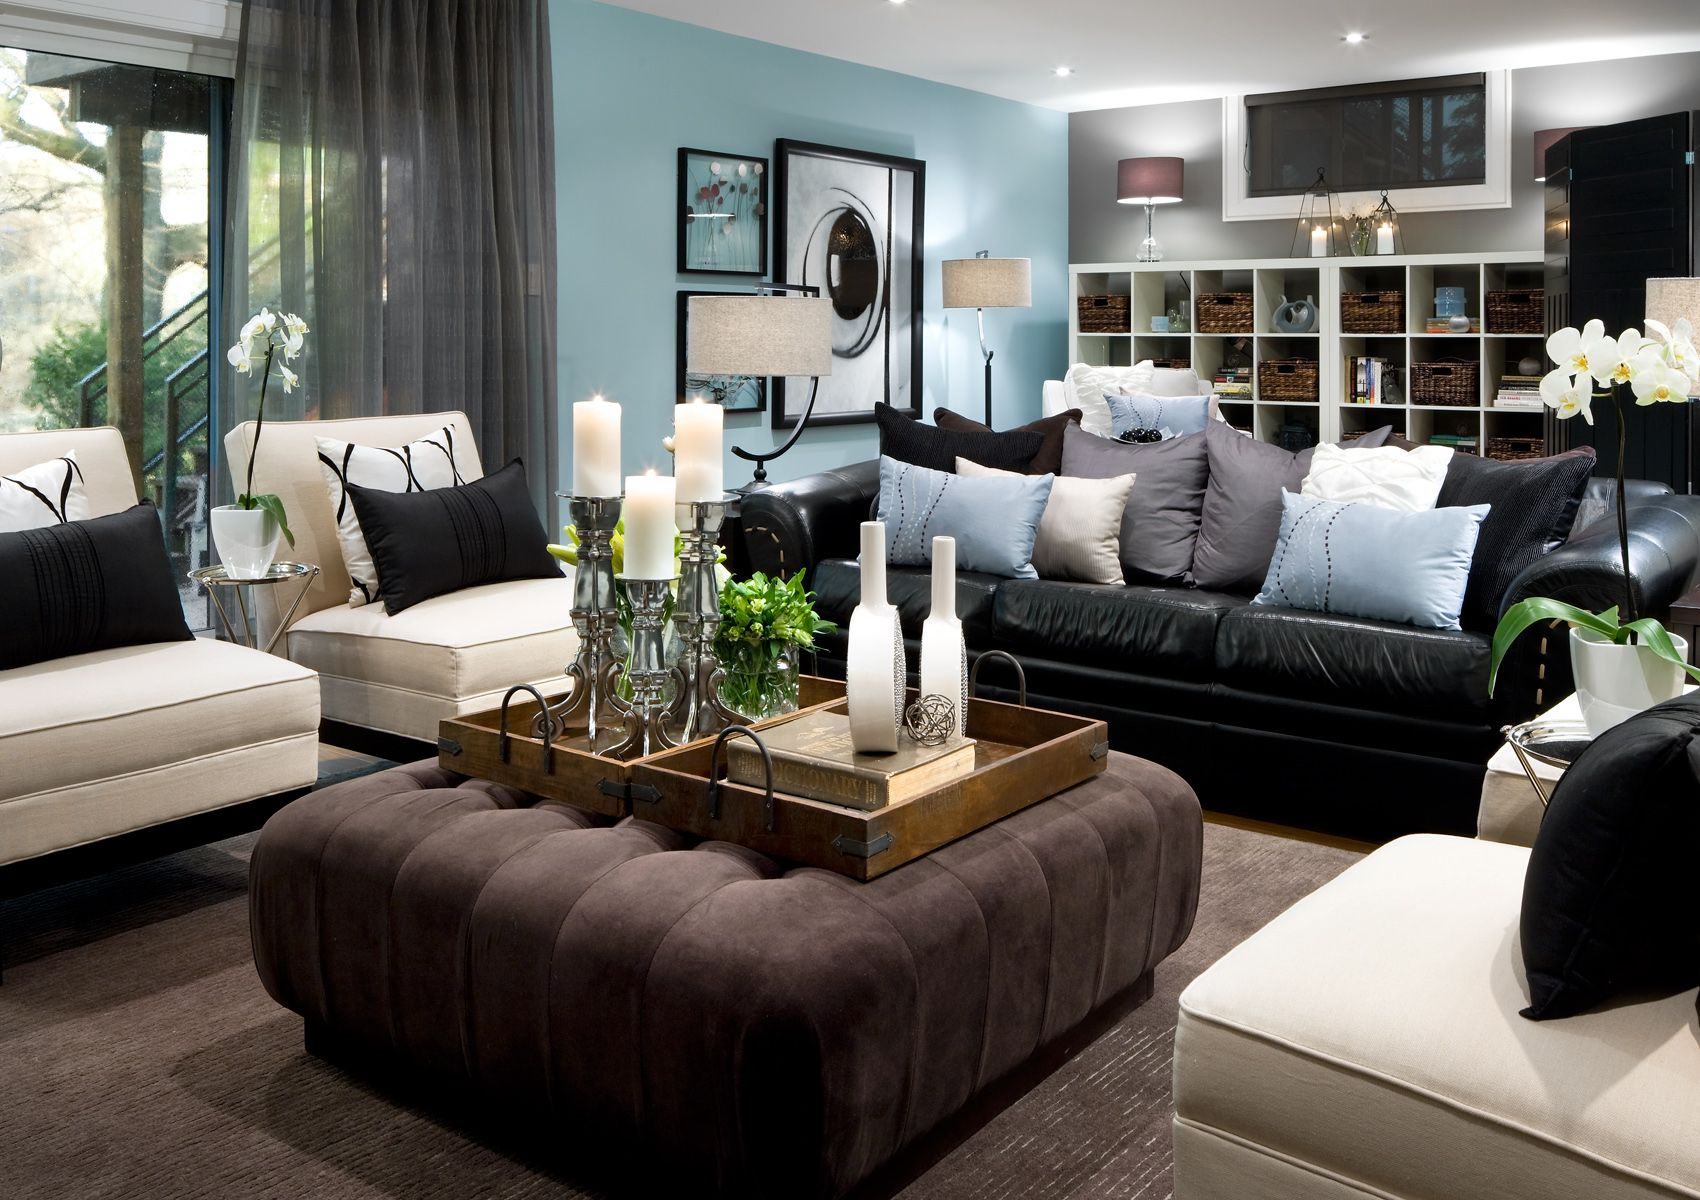 Merveilleux Take Advantage Of Natural Light When You Can In Basement Living Rooms